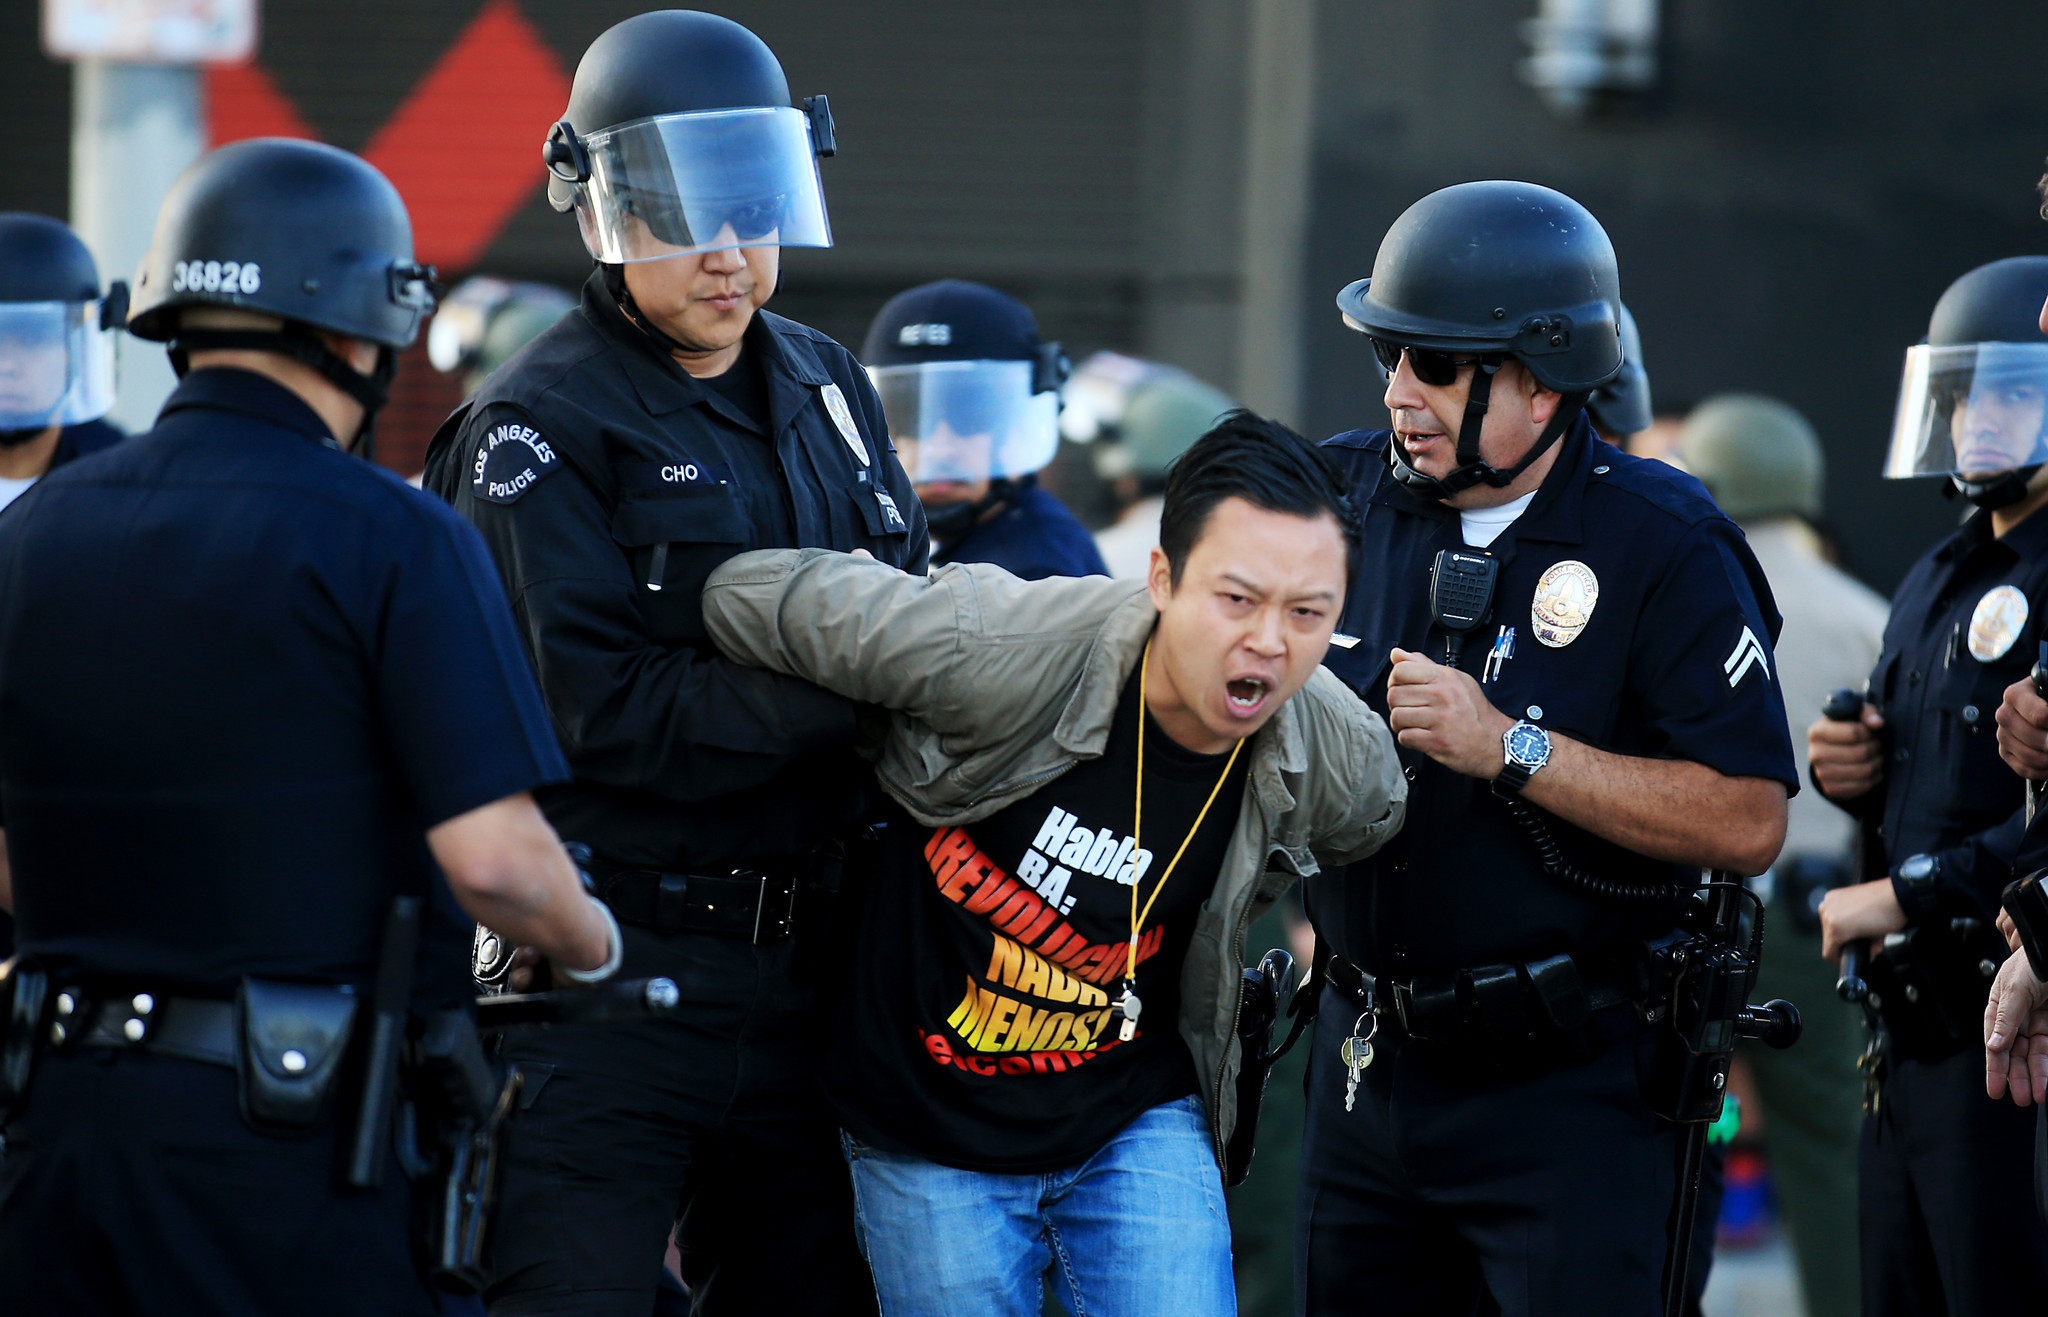 Police arrest a protester during an anti-lockdown protest